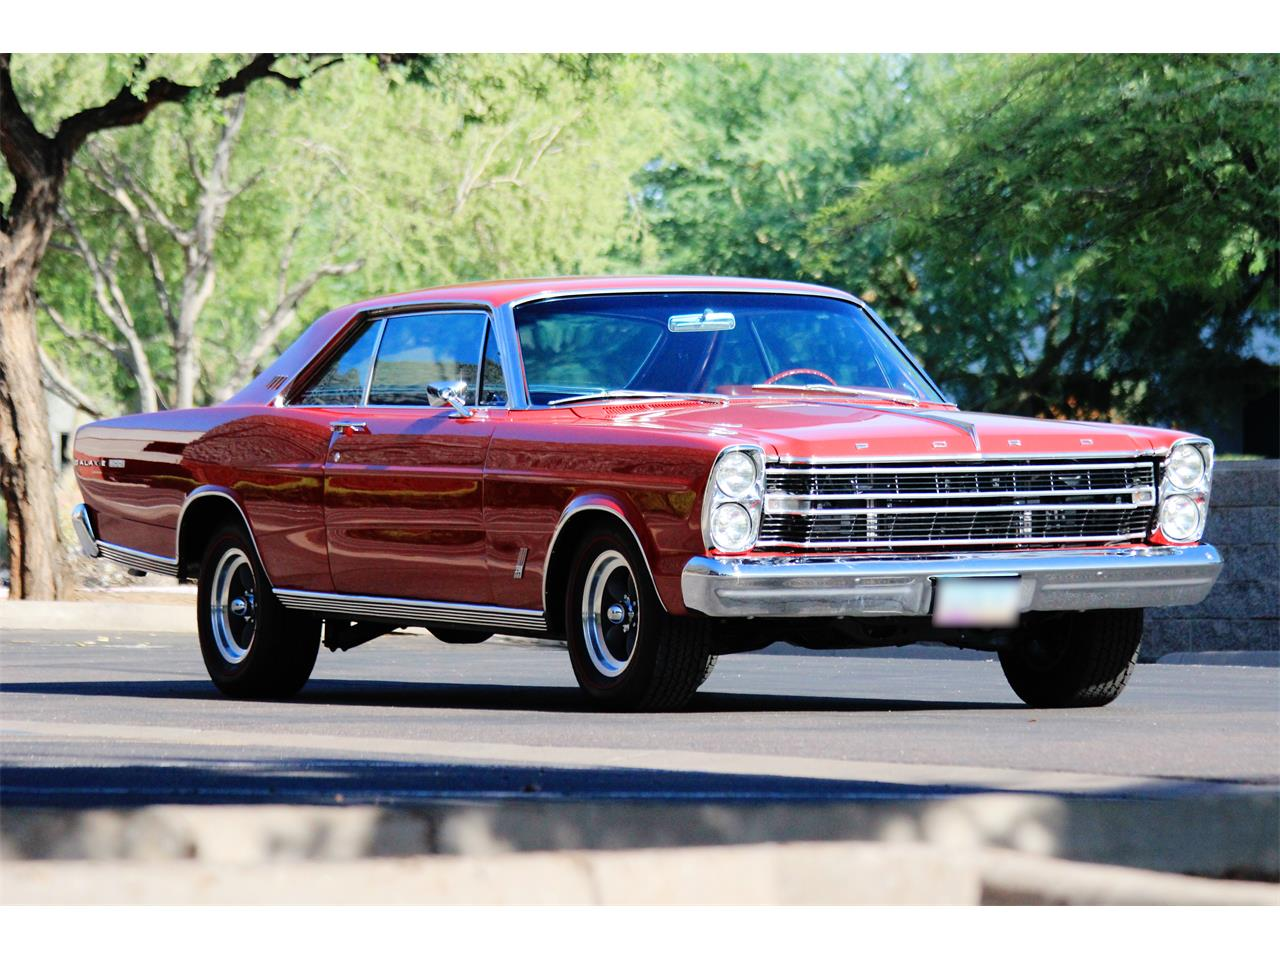 1966 Ford Galaxie 500 for sale in Scottsdale, AZ